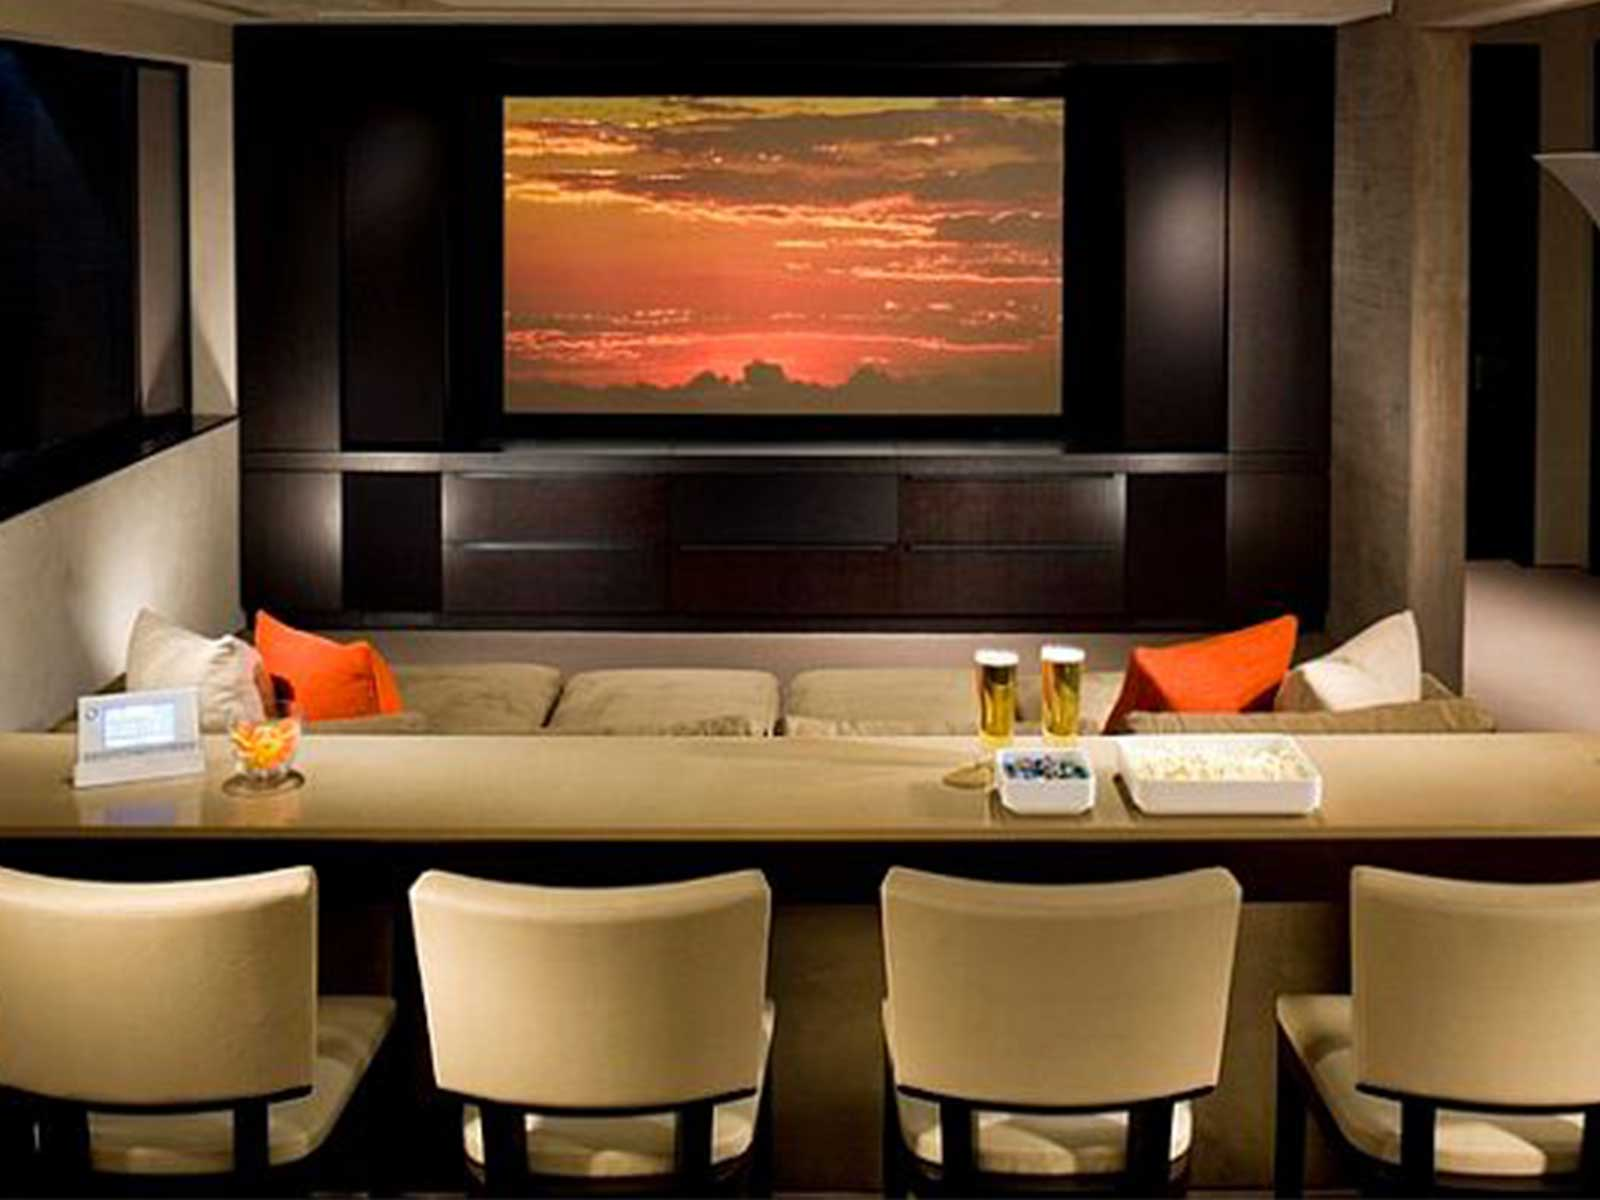 Fantastic Design Of The White Wall And Big Screen Of The Home Theater Design  With Some